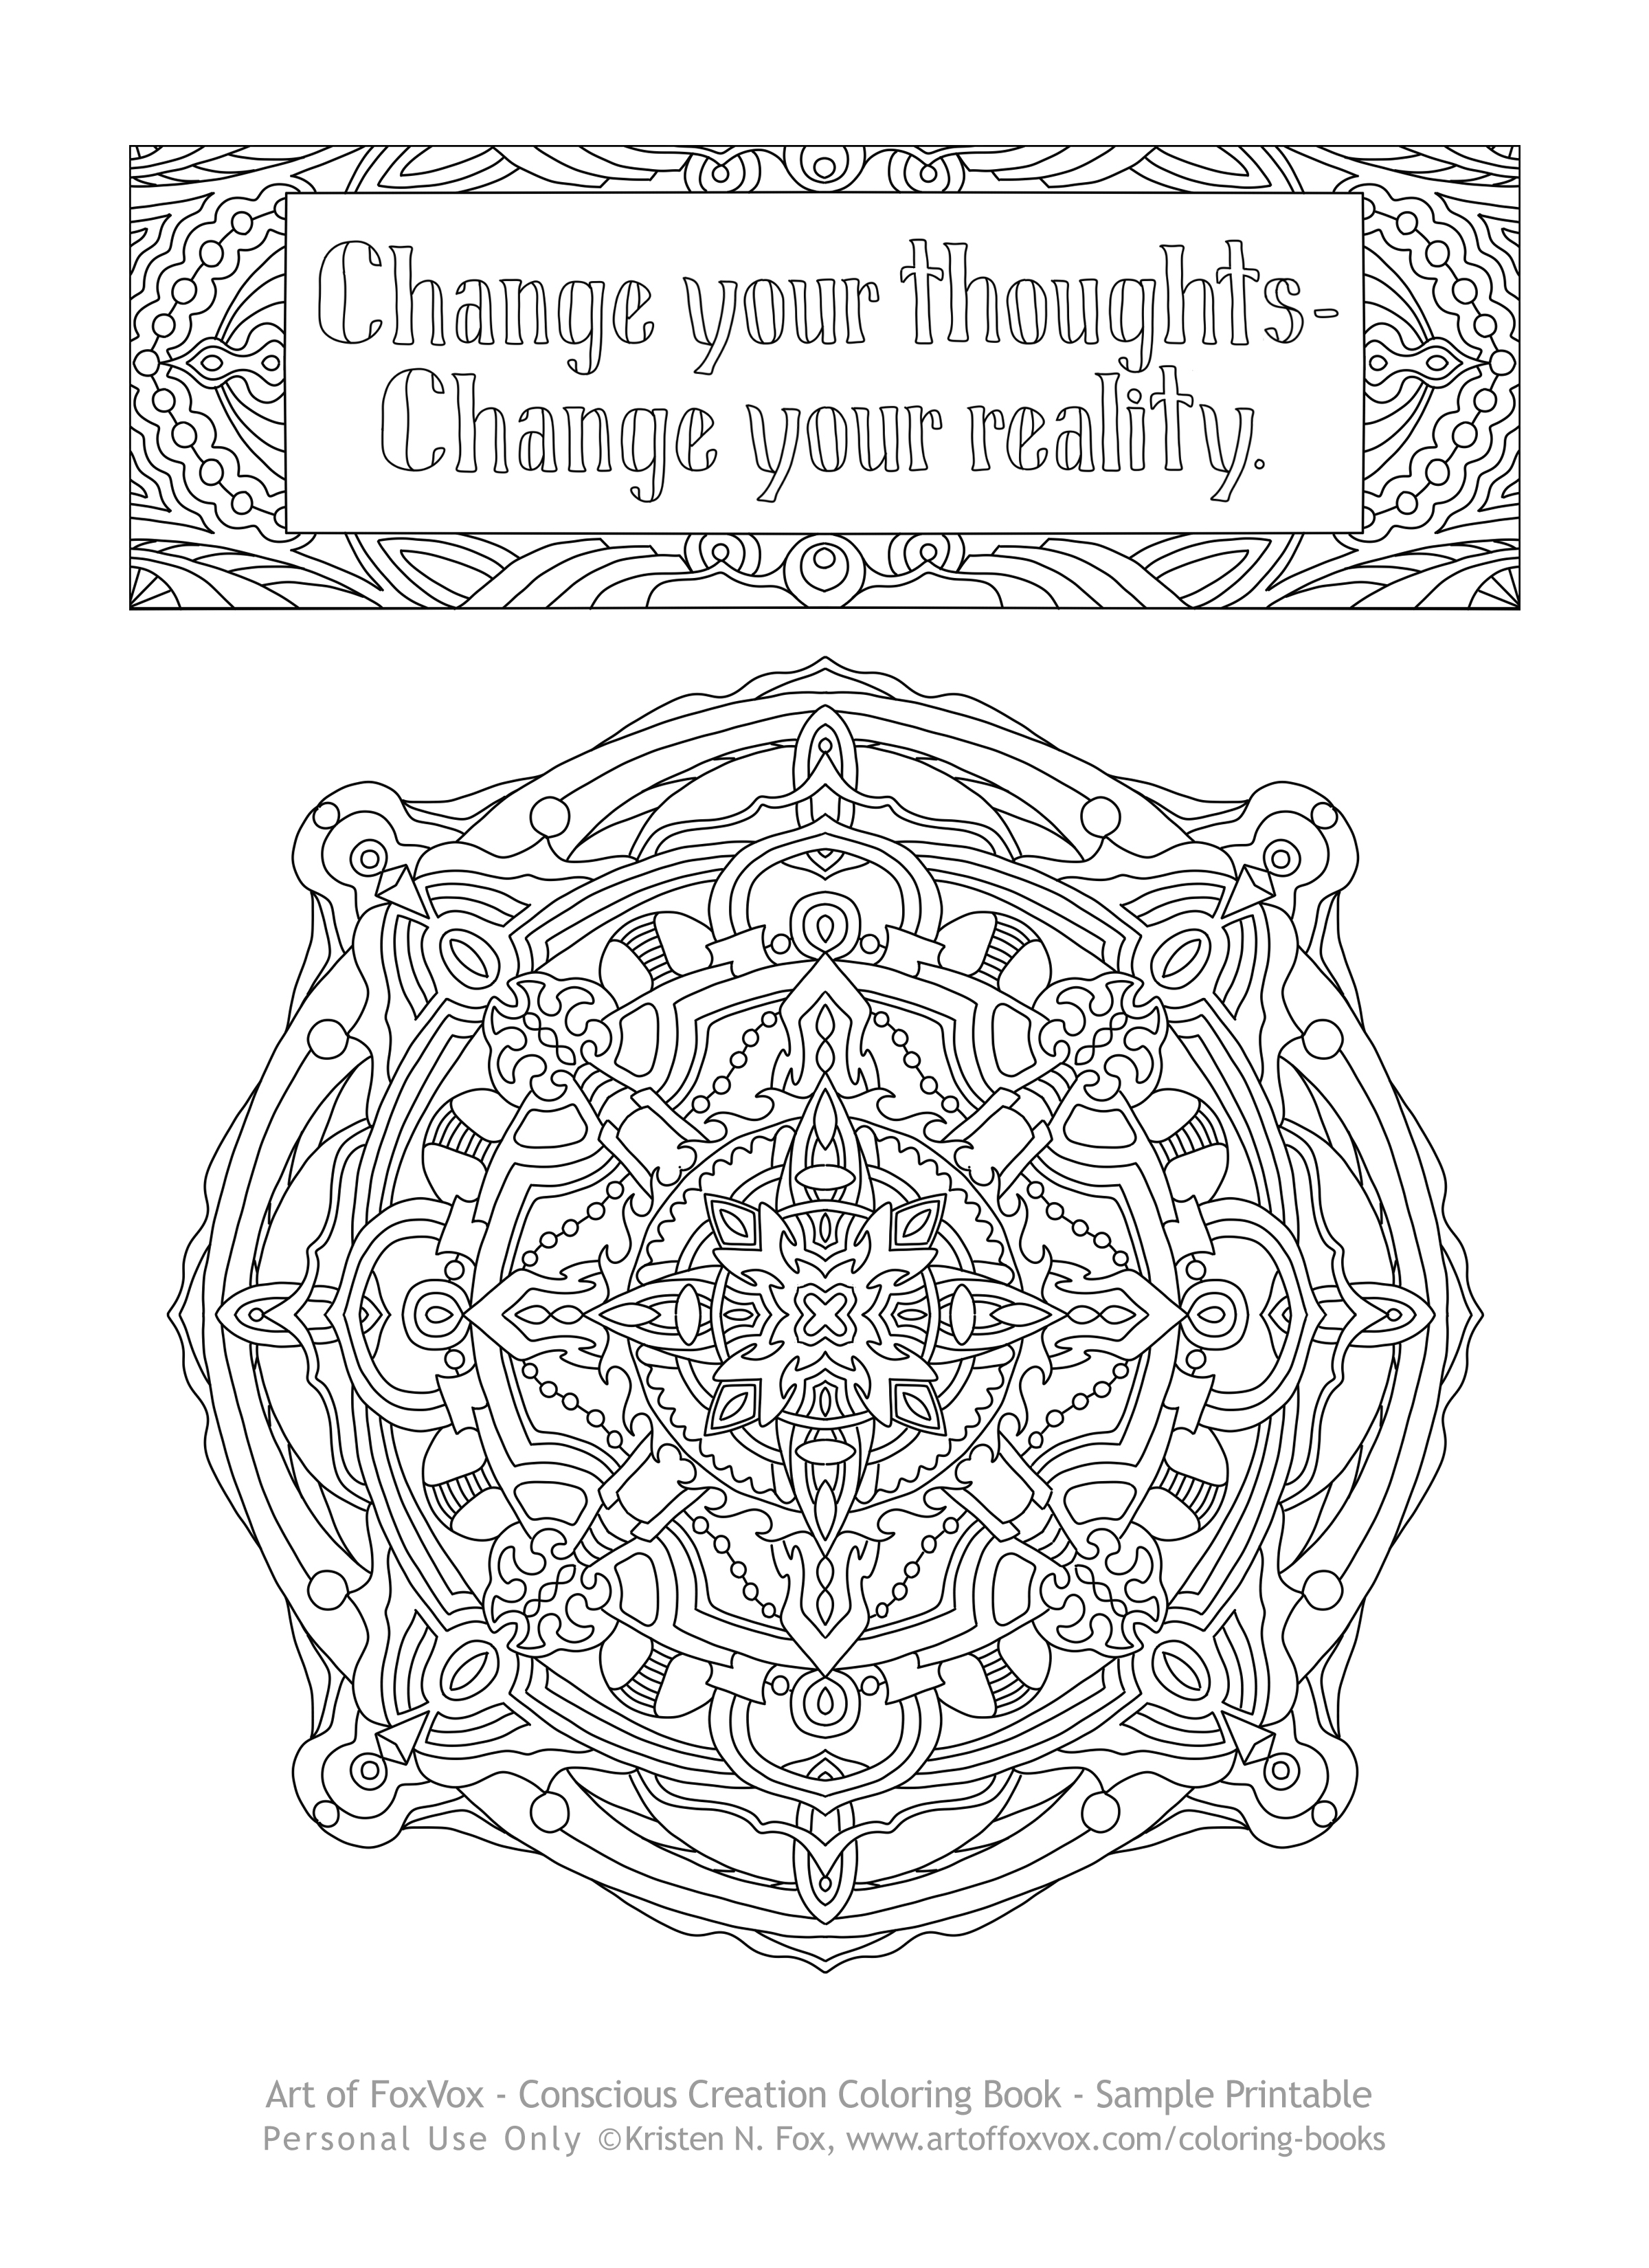 Click Here To See A Sample Page Of The Conscious Creation Coloring Book You Can Print On Your Printer Color